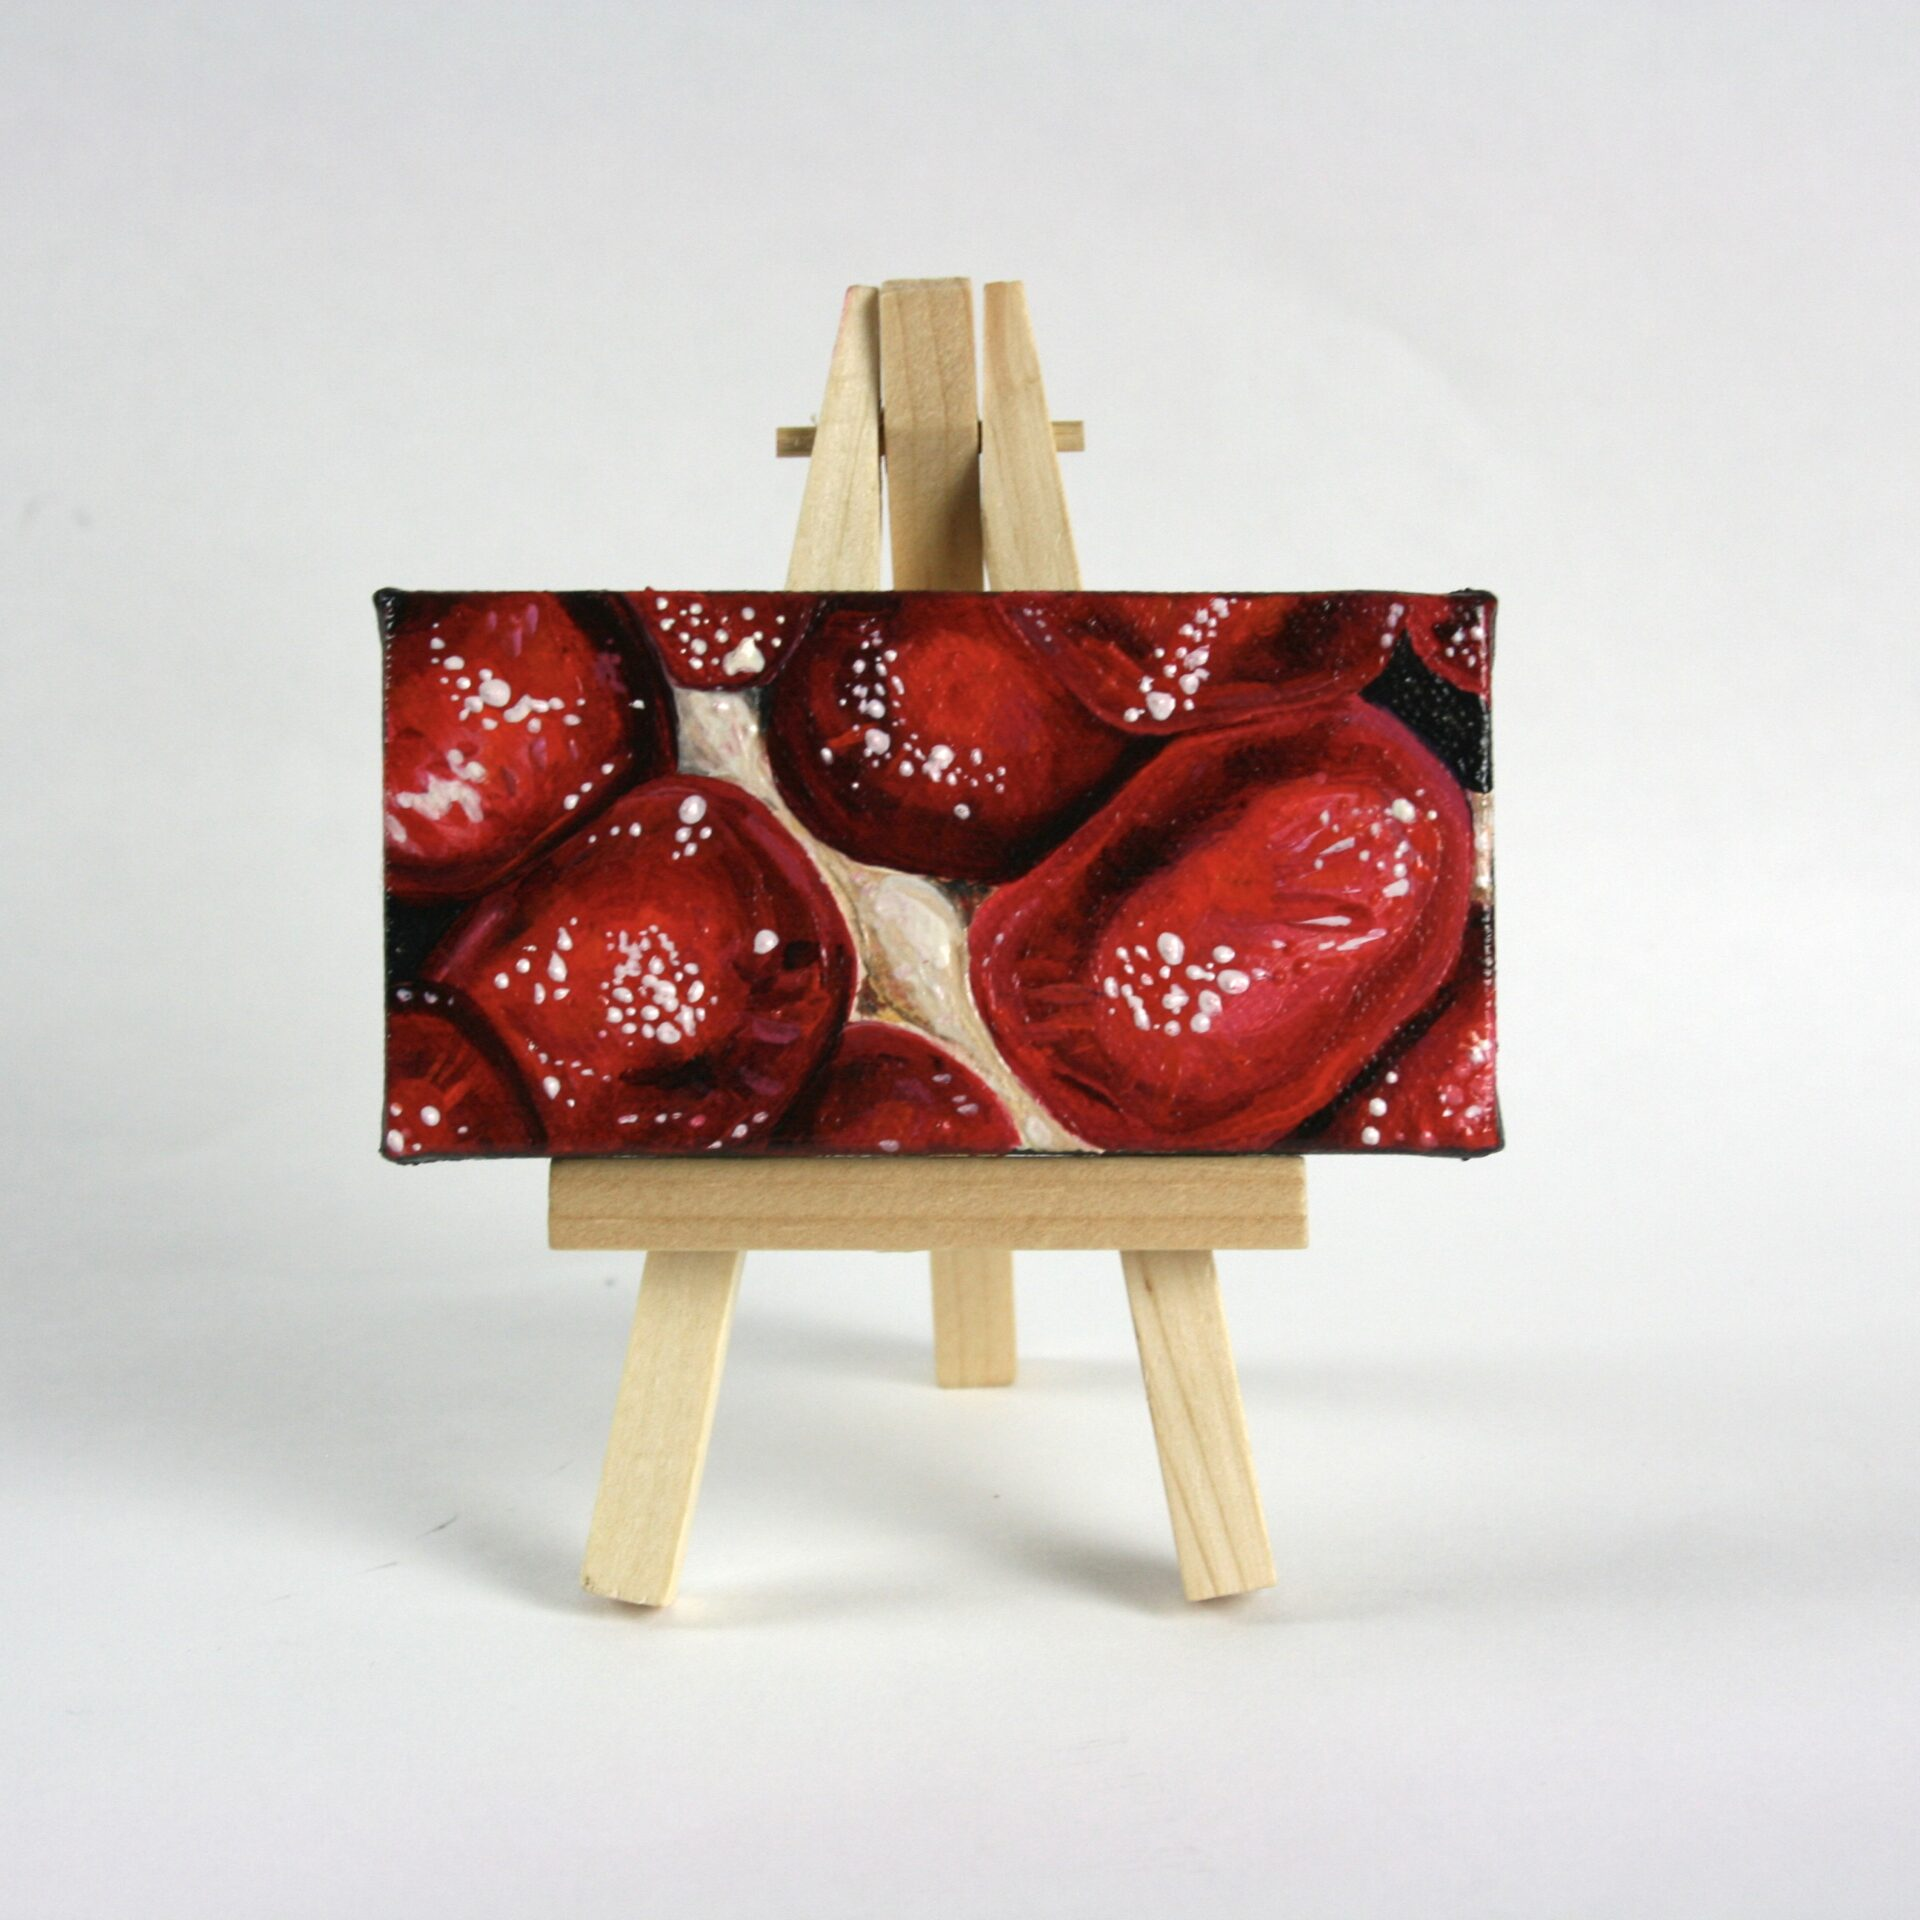 "Angela Faustina, Pomegranate XXIV, 2015. Oil on cradled painting panel with wooden easel, 4"" by 2""."